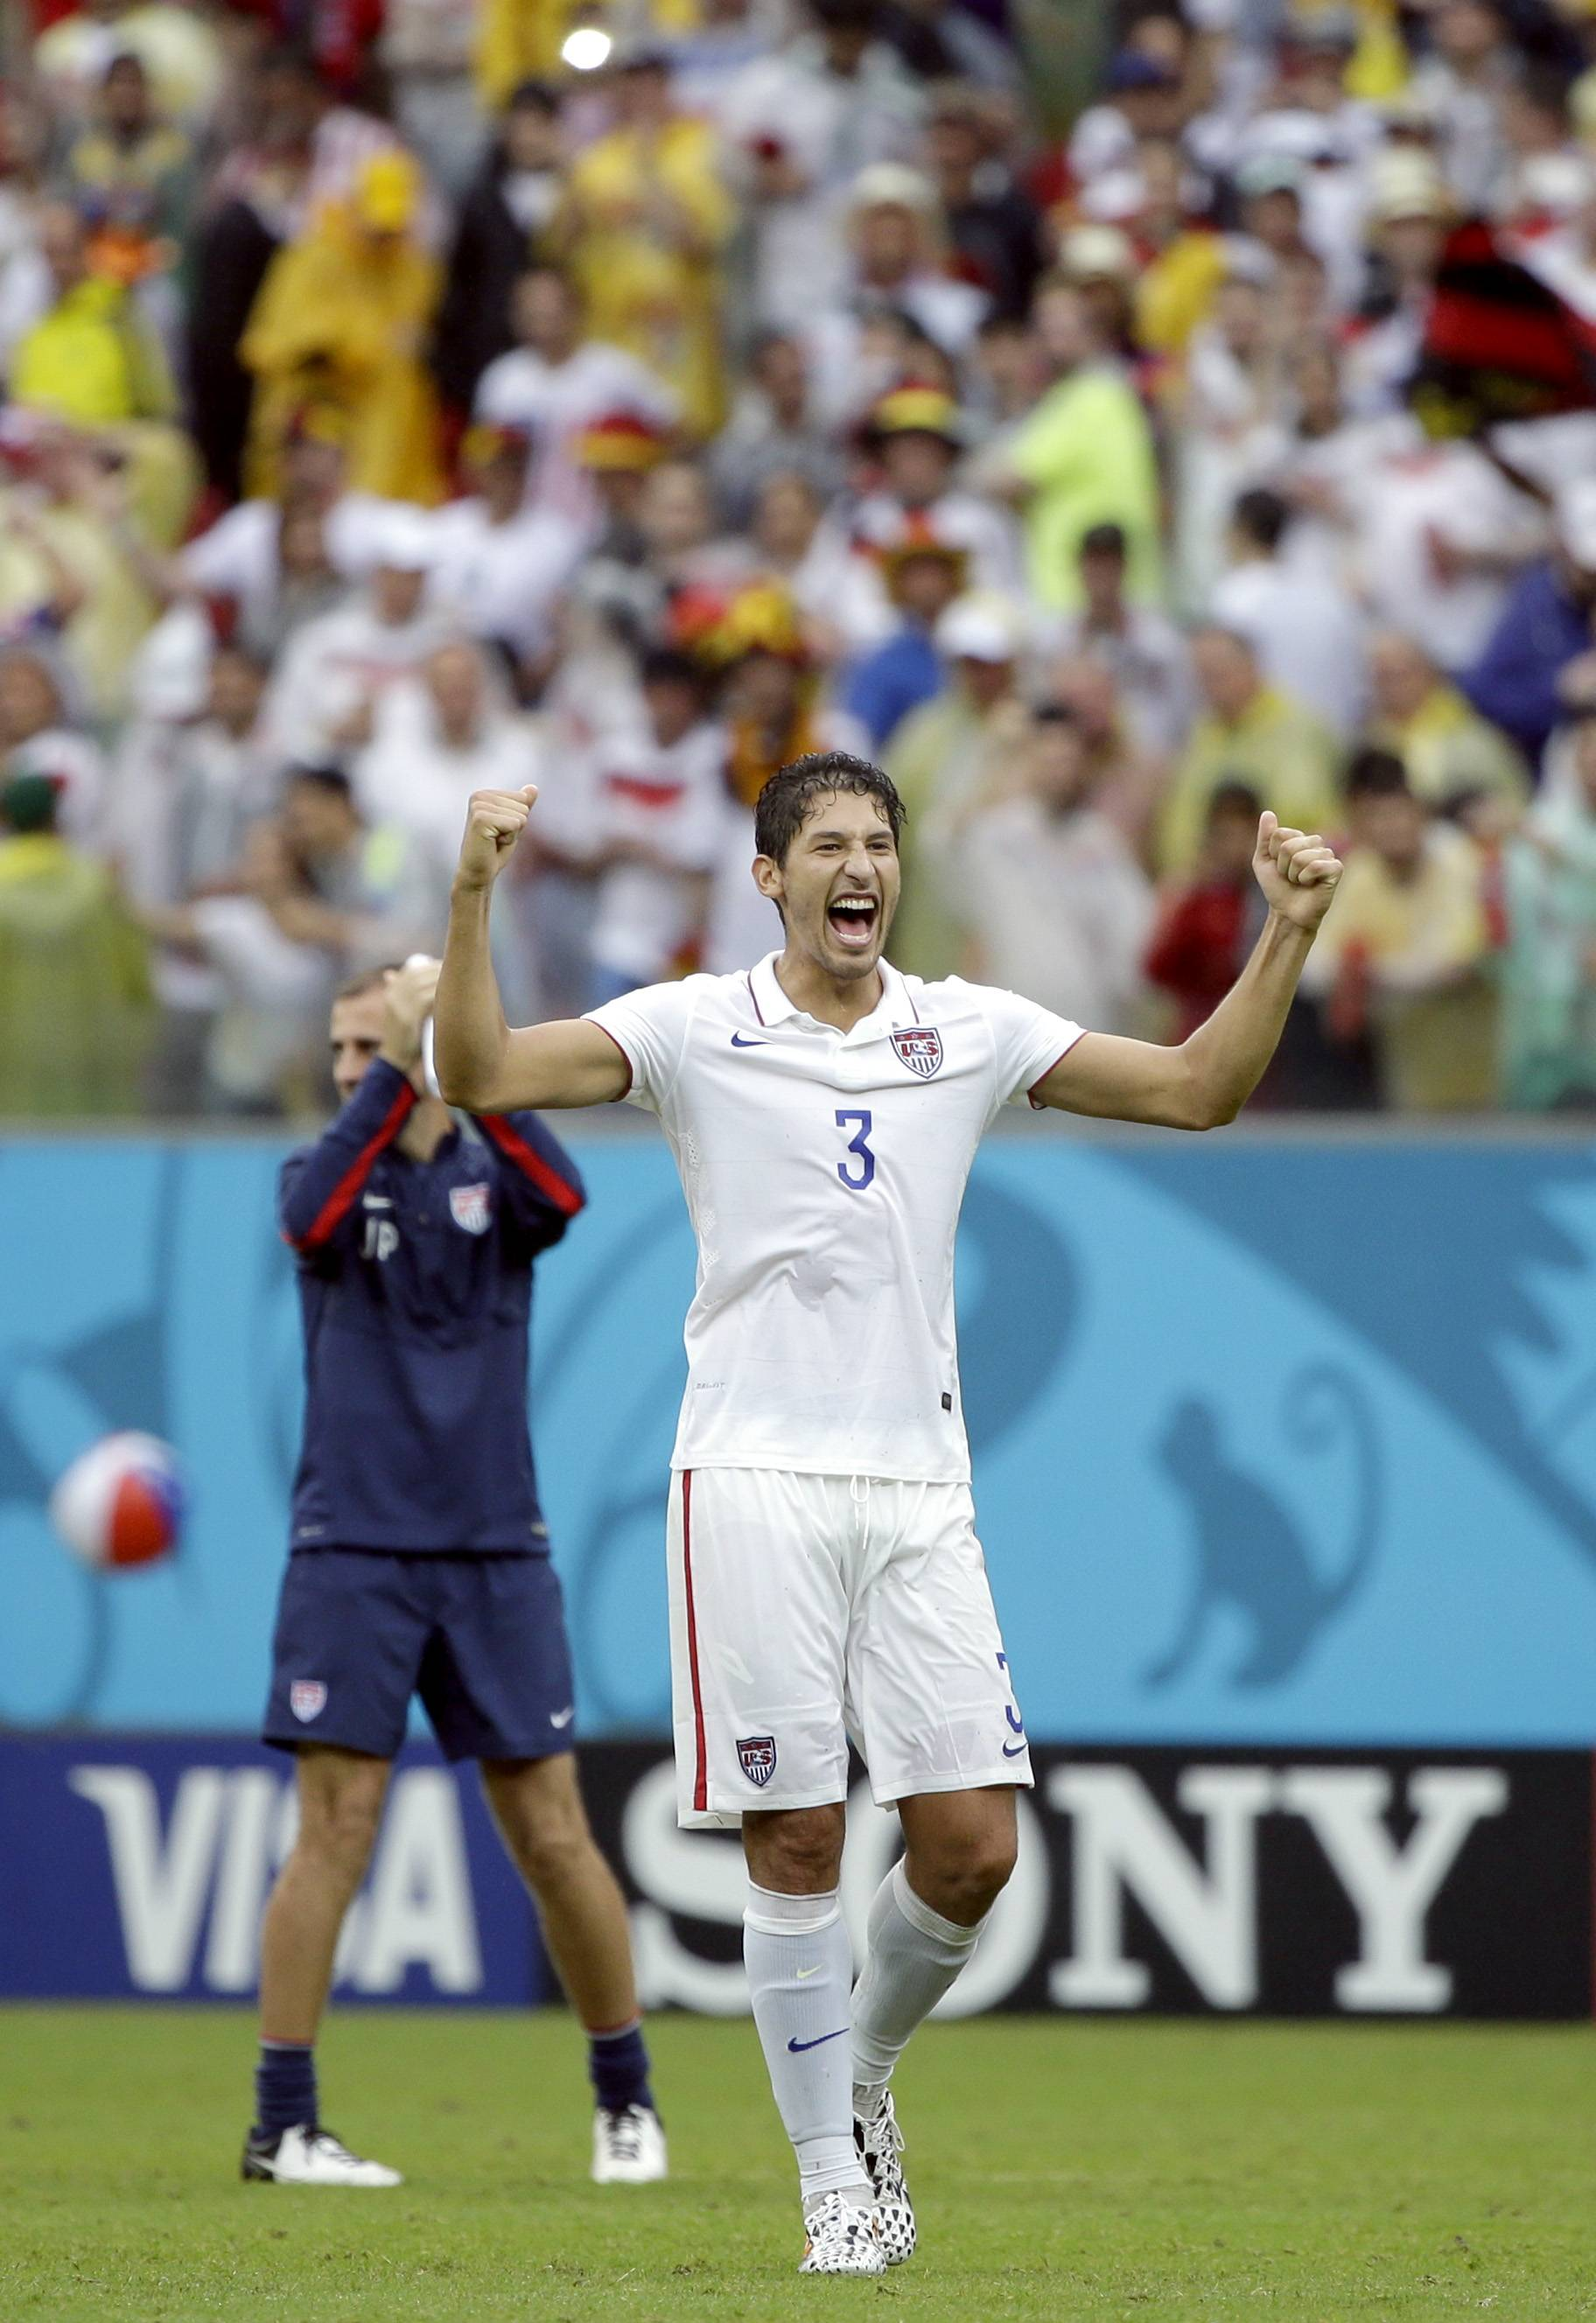 United States defender Omar Gonzalez celebrates after qualifying for the next World Cup round following their 1-0 loss to Germany.